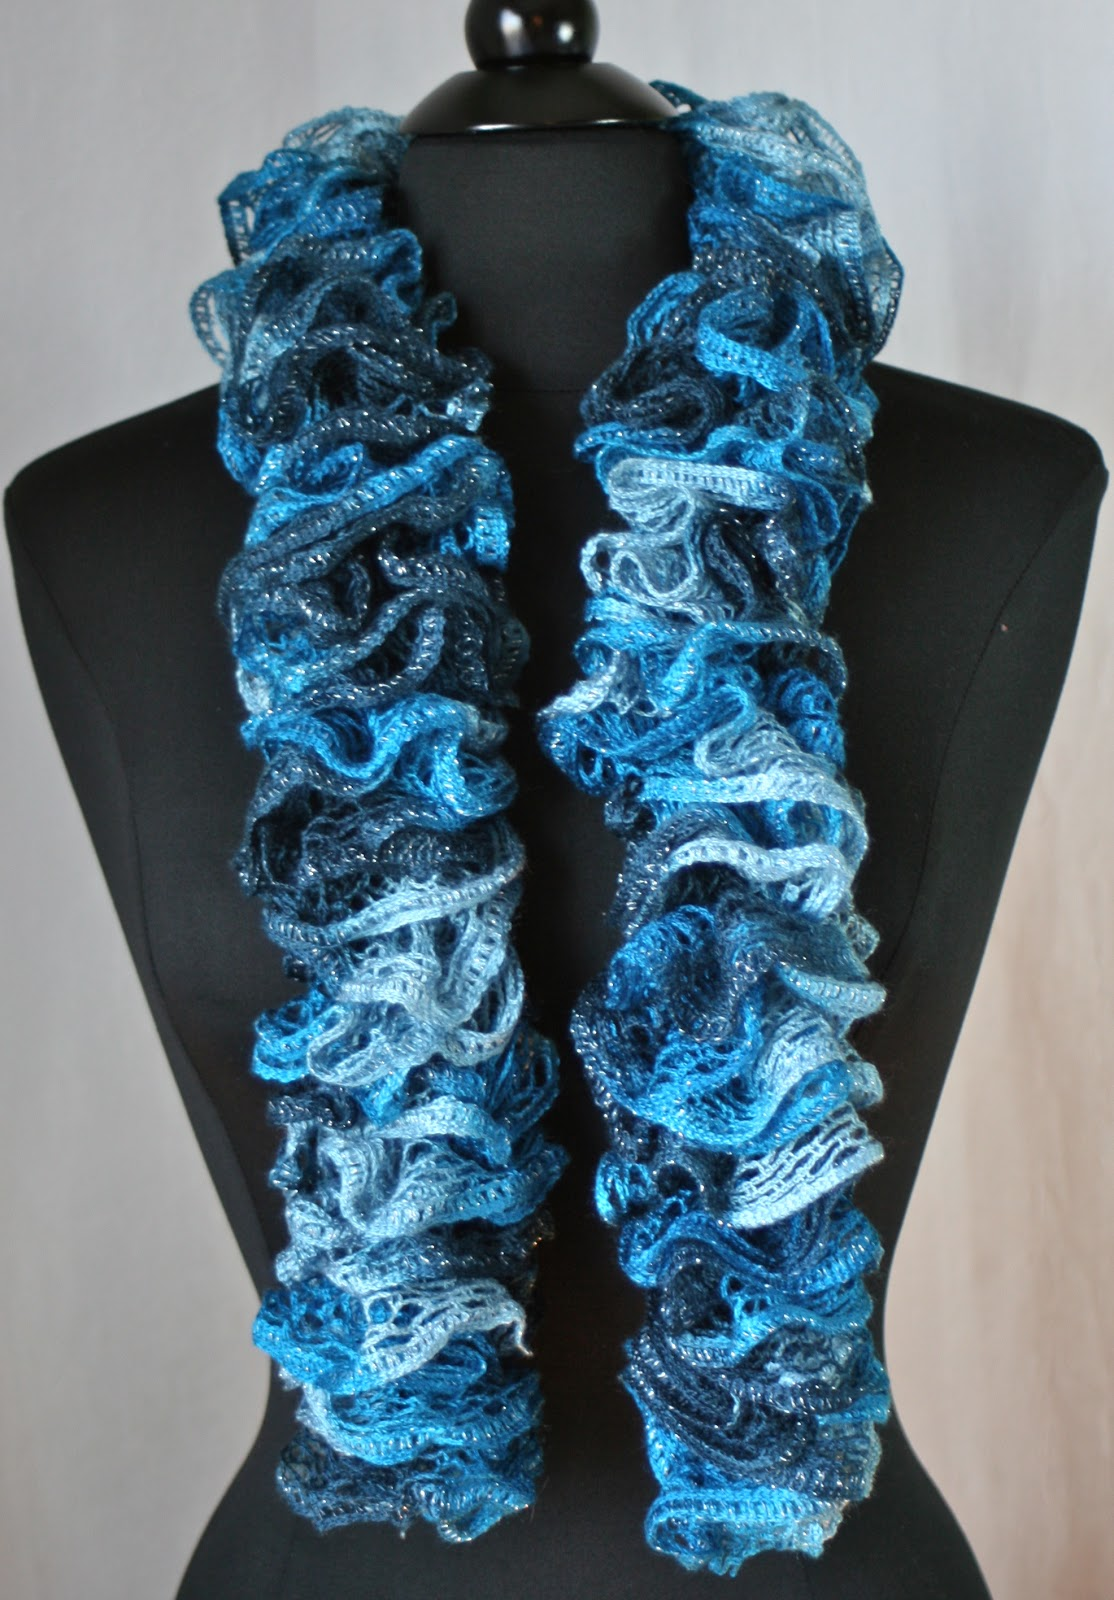 Crocheting Ruffle Scarf : Crocheted Ruffle Scarf in Jive Crochet Pinterest